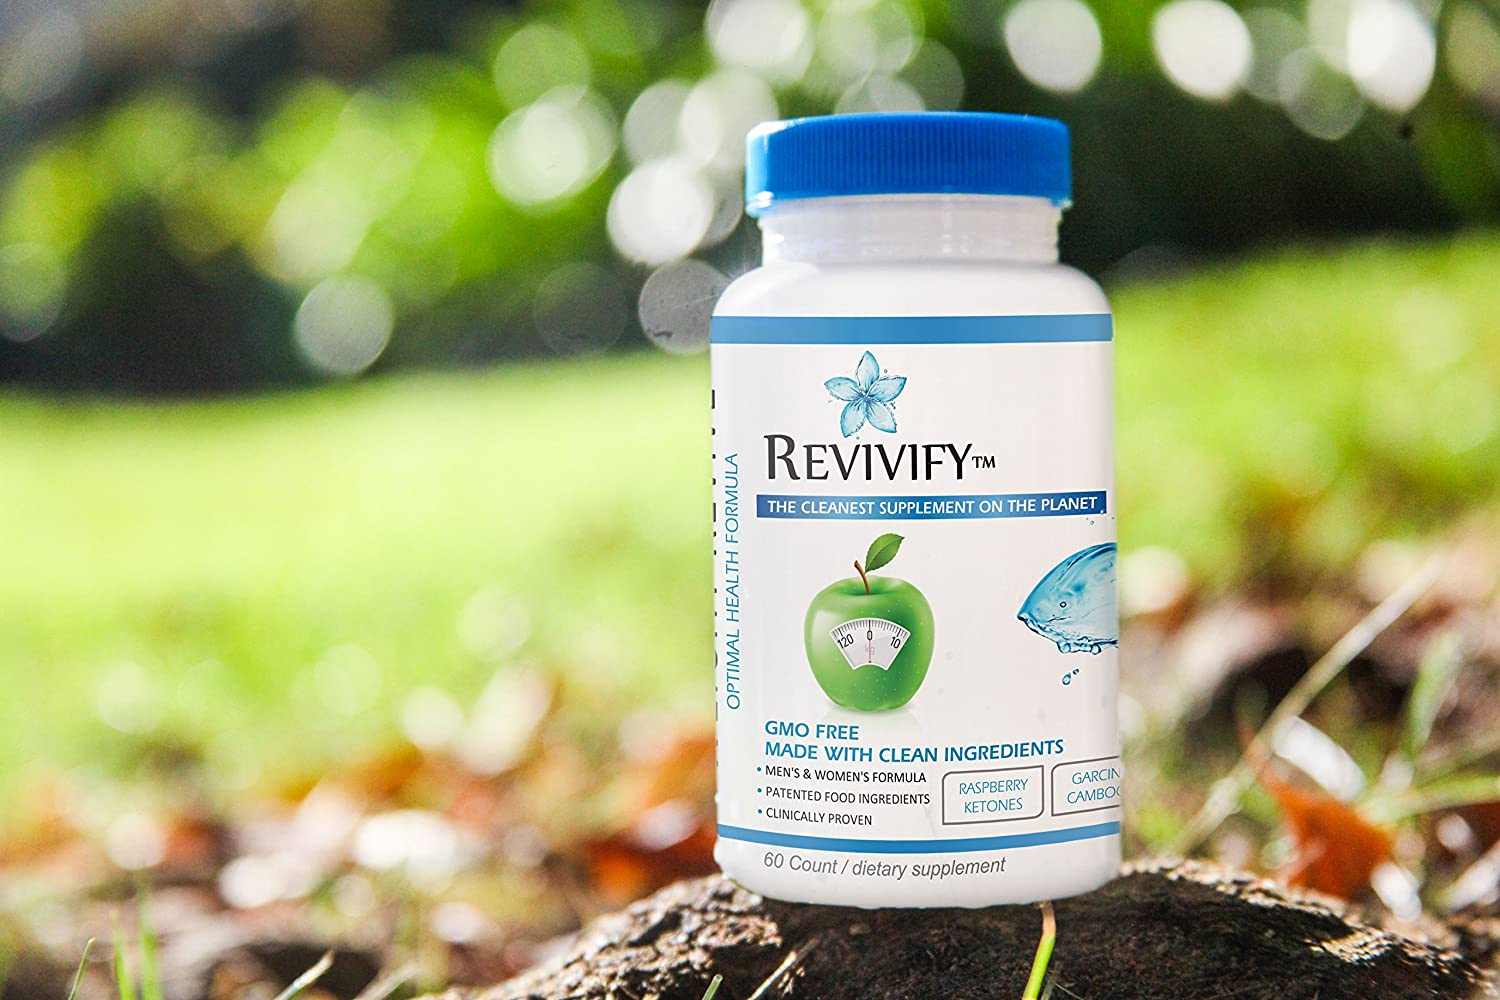 Revivify Organic GMO-Free Weight Revive and Weight Loss Aid with Garcinia Cambogia, Ketones, Green Coffee, Green Tea and More. Gluten Free and Ultraformulated Nutrition and Support – 60 Count